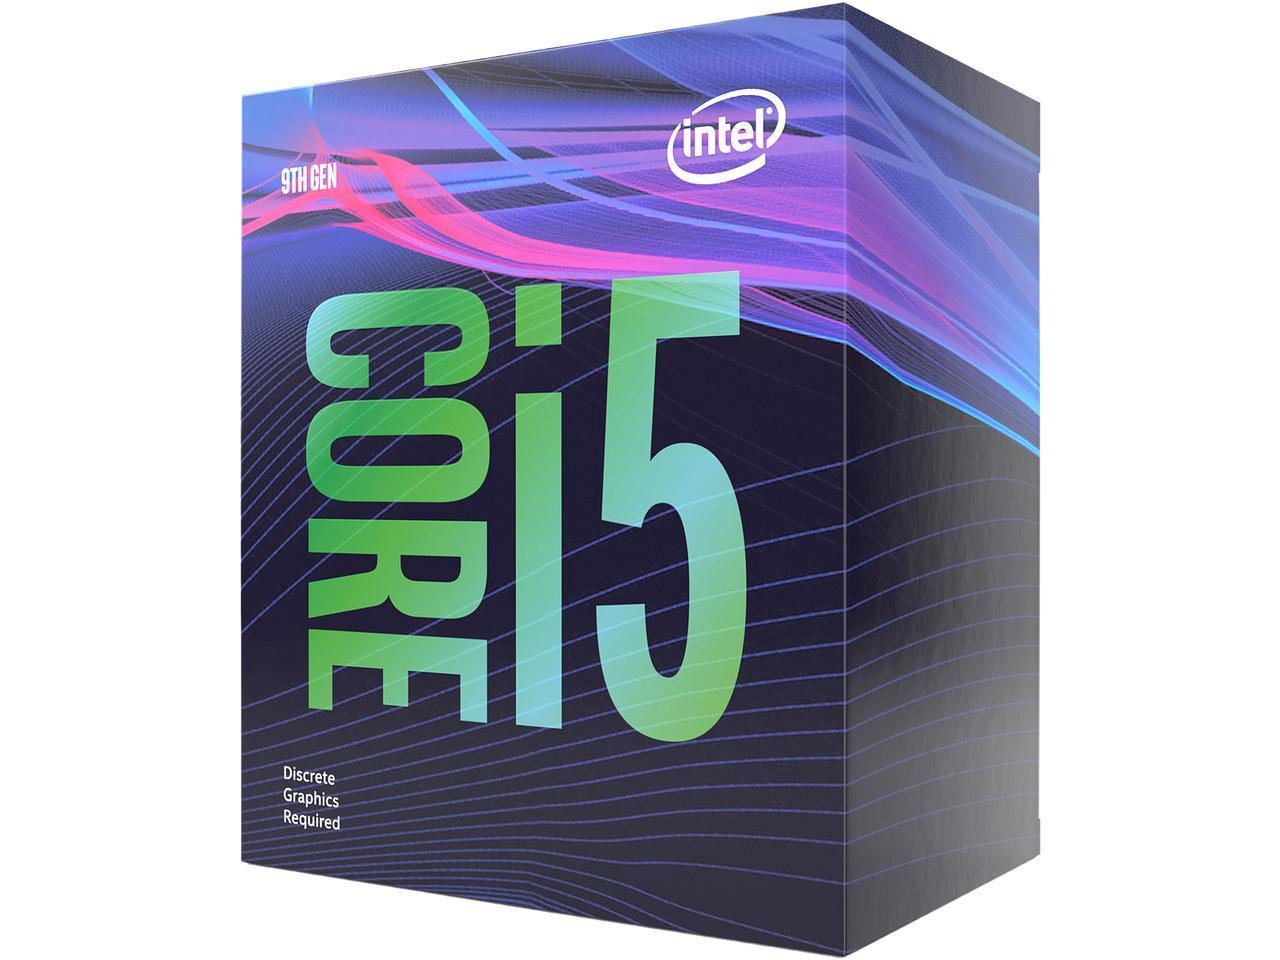 Процесор Intel Coffee Lake Core i5-9400F 2.9GHz (up to 4.10GHz ), 9MB, 65W LGA1151 (300 Series)-3